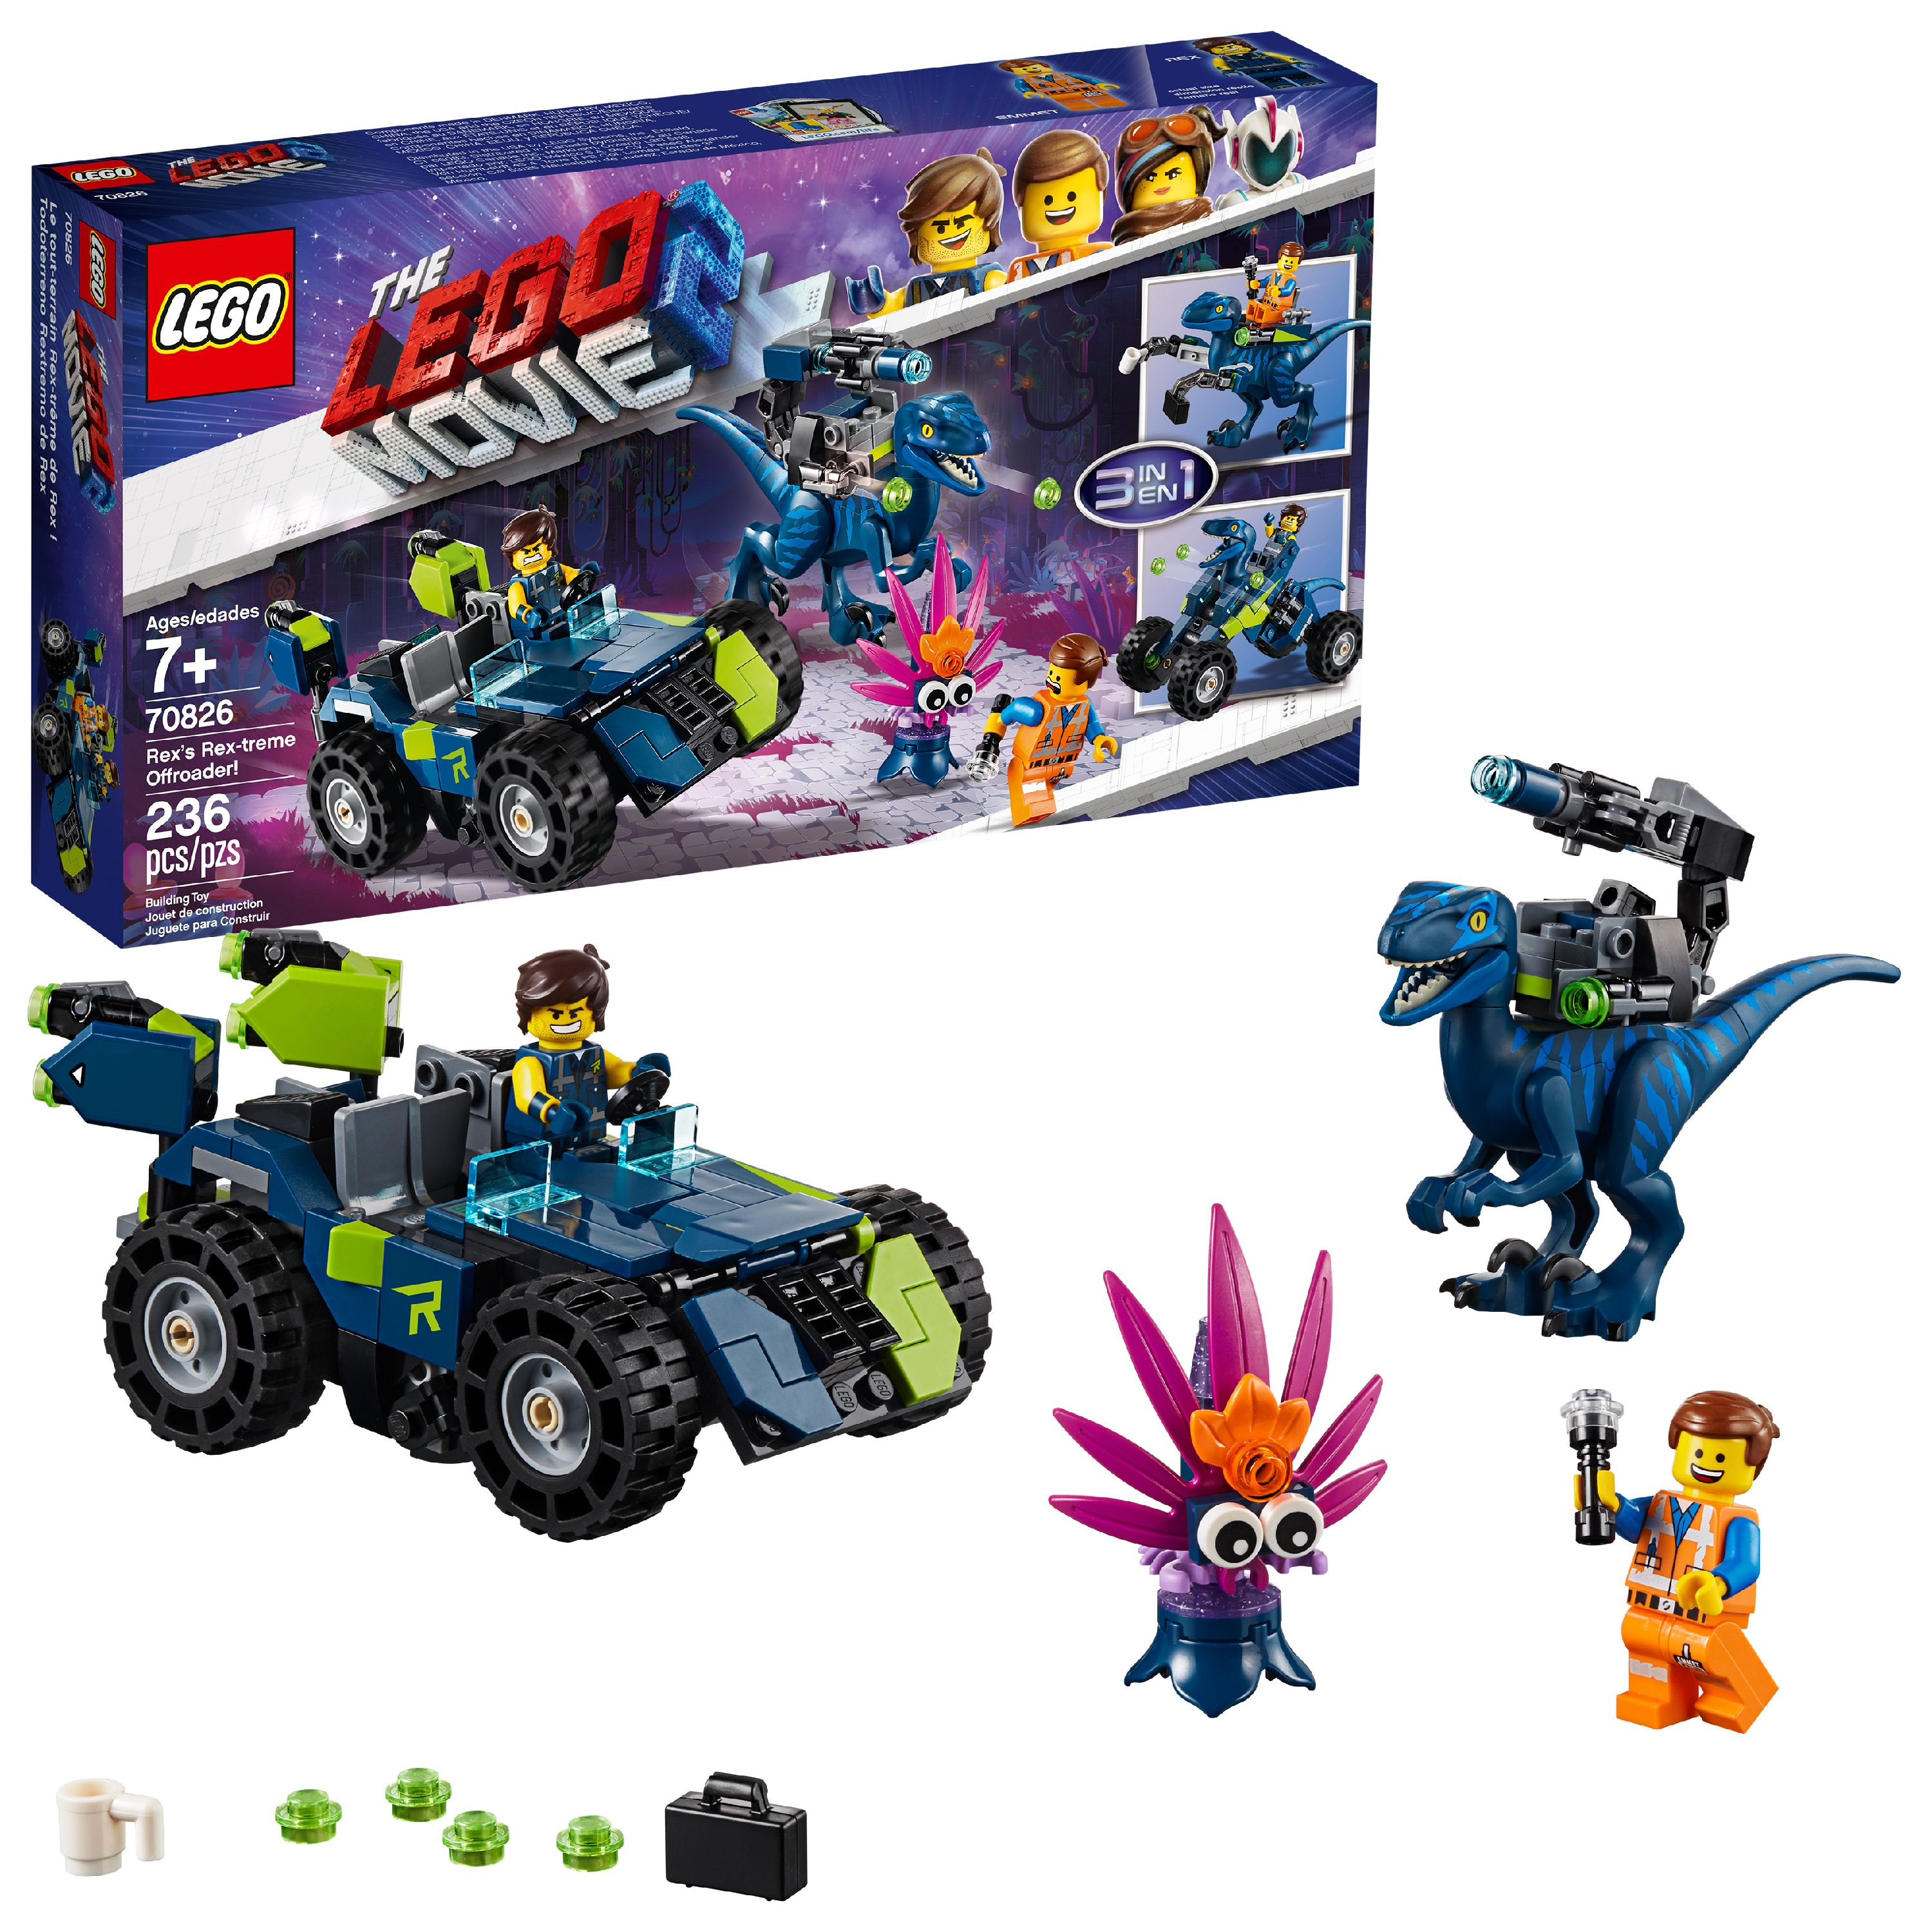 LEGO The LEGO Movie 2 Rex's Rex-treme Offroader! 70826